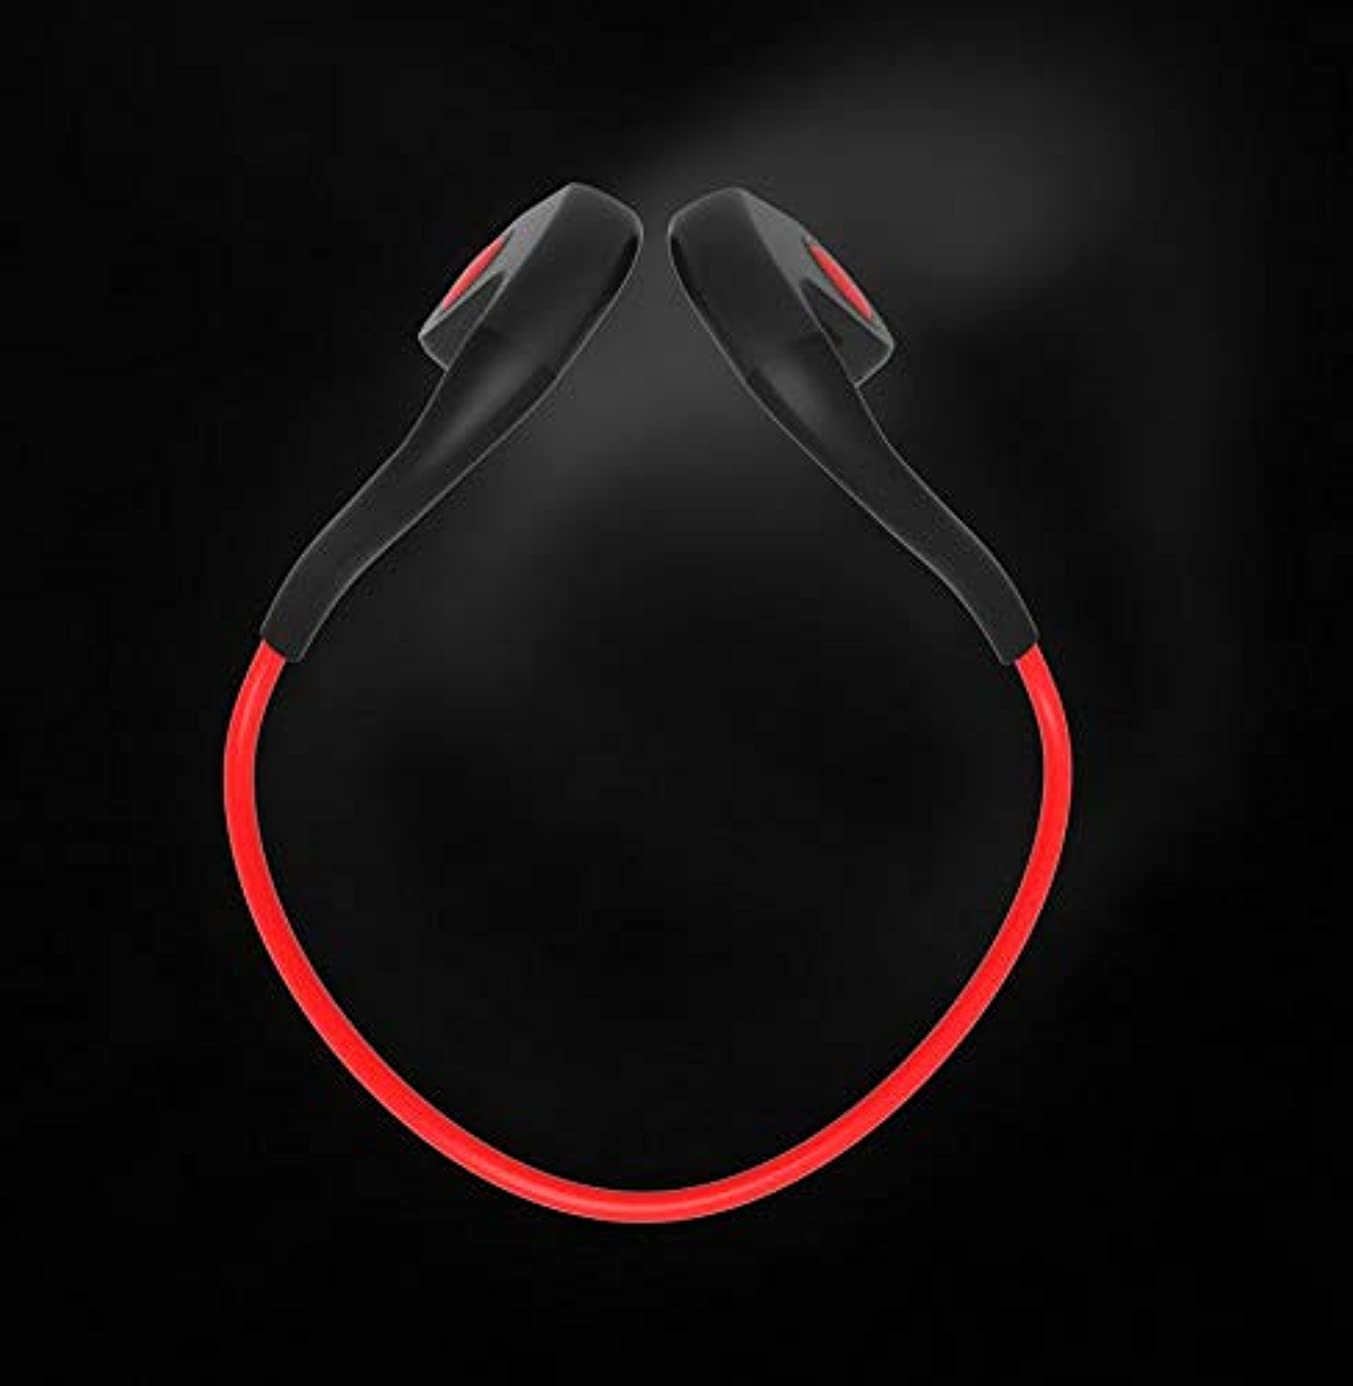 VCB BRAND Bone Conduction Headset Memory Cable Waterproof Movement - Red gnn1086051